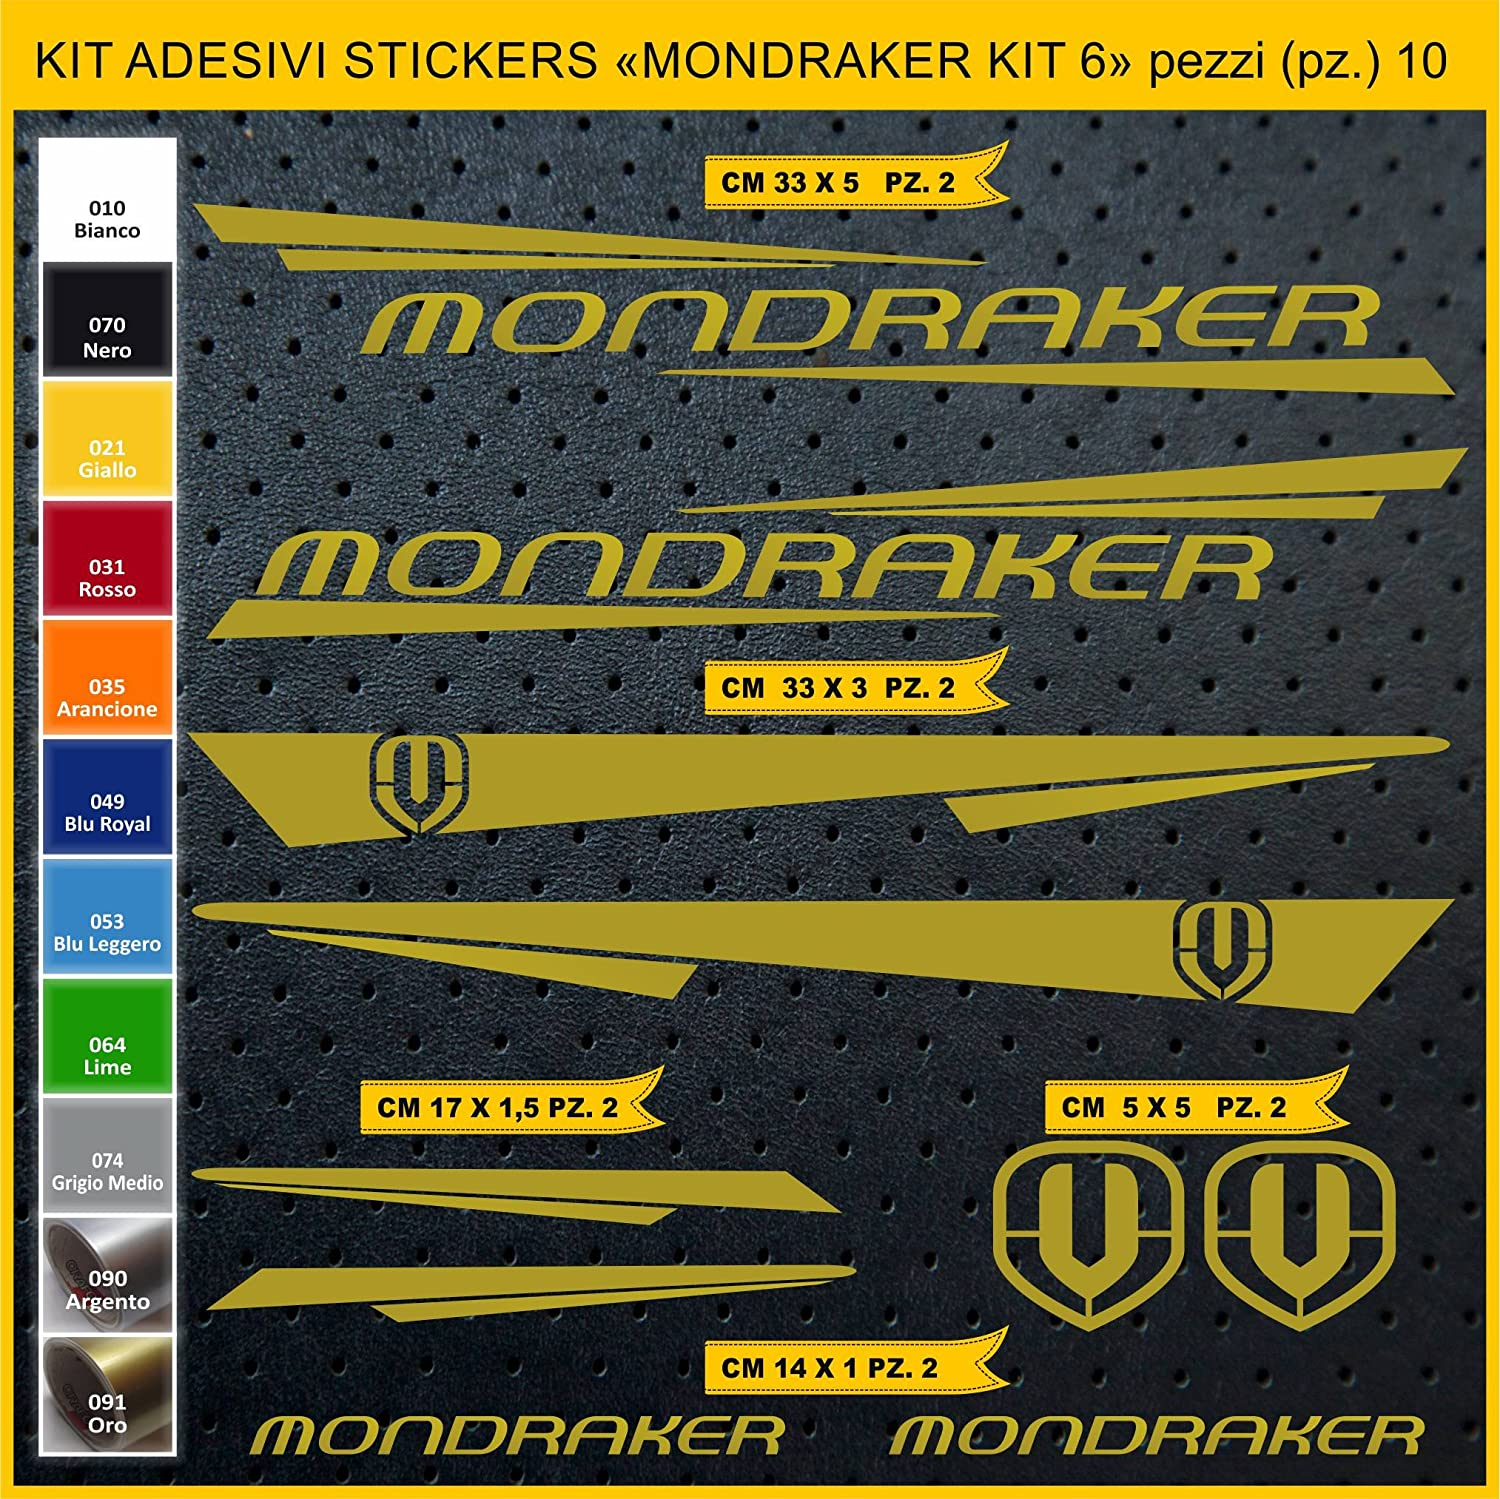 Kit Pegatinas Stickers Bicicleta MONDRAKER - Kit 6-10 Piezas- Bike Cycle Cod. 0886 (091 Oro): Amazon.es: Deportes y aire libre